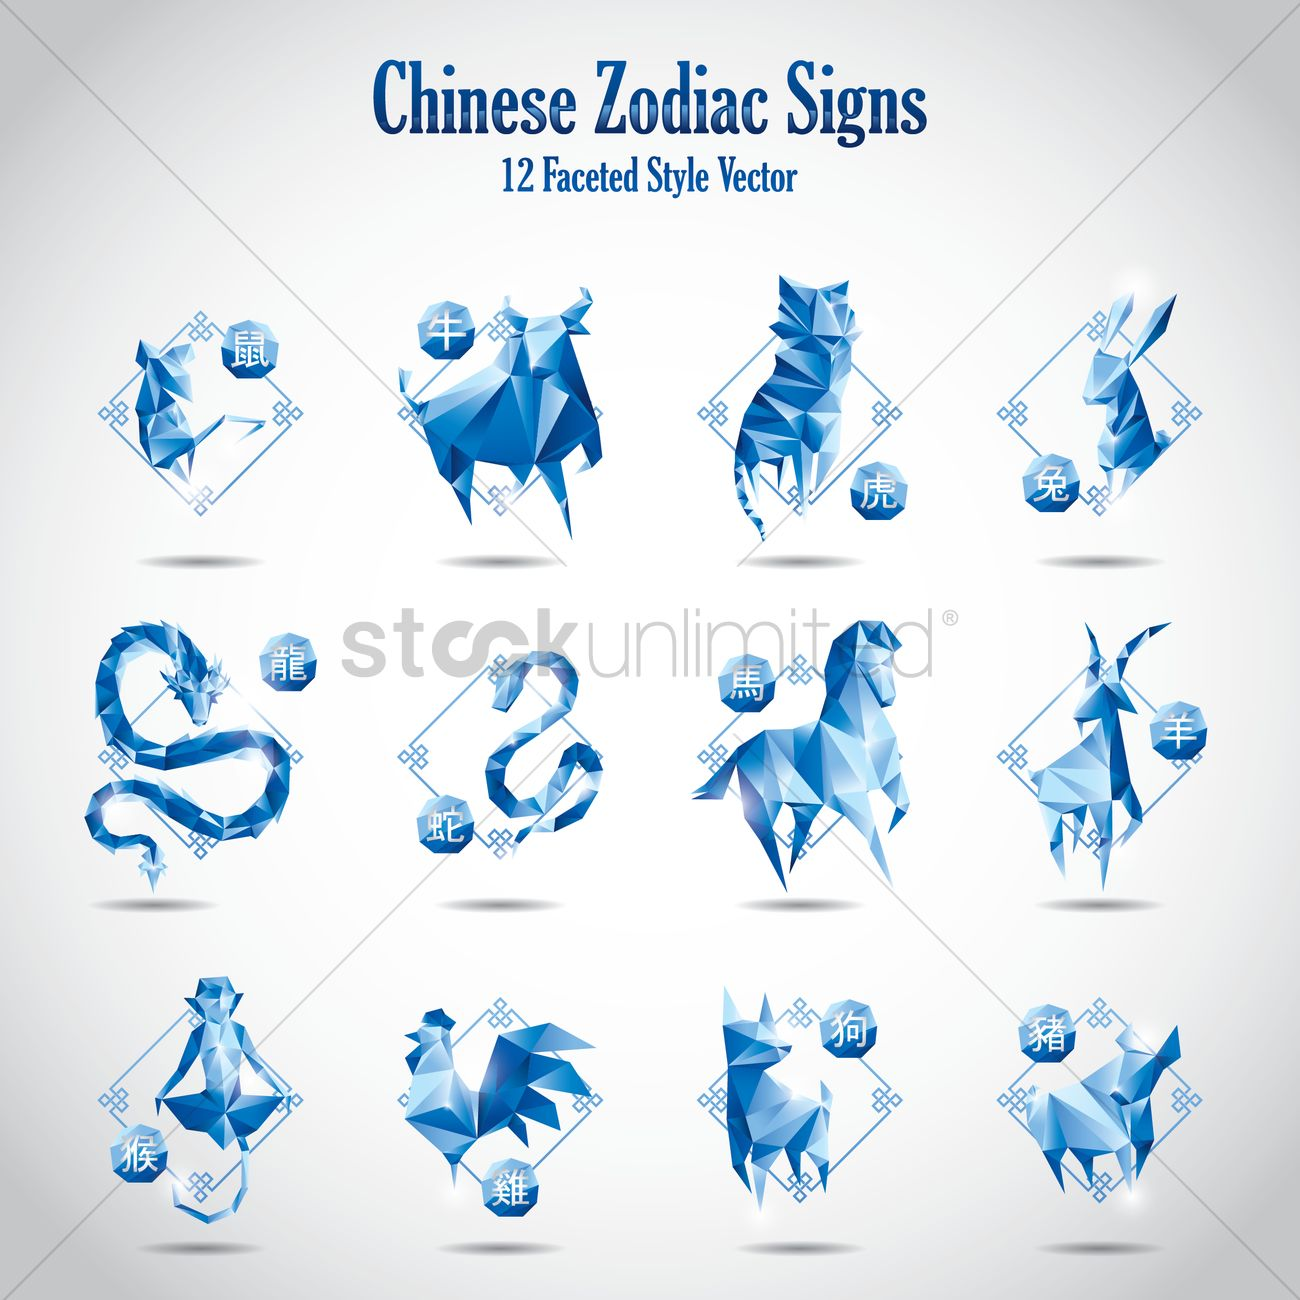 Chinese zodiac signs vector image 1323238 stockunlimited chinese zodiac signs vector graphic buycottarizona